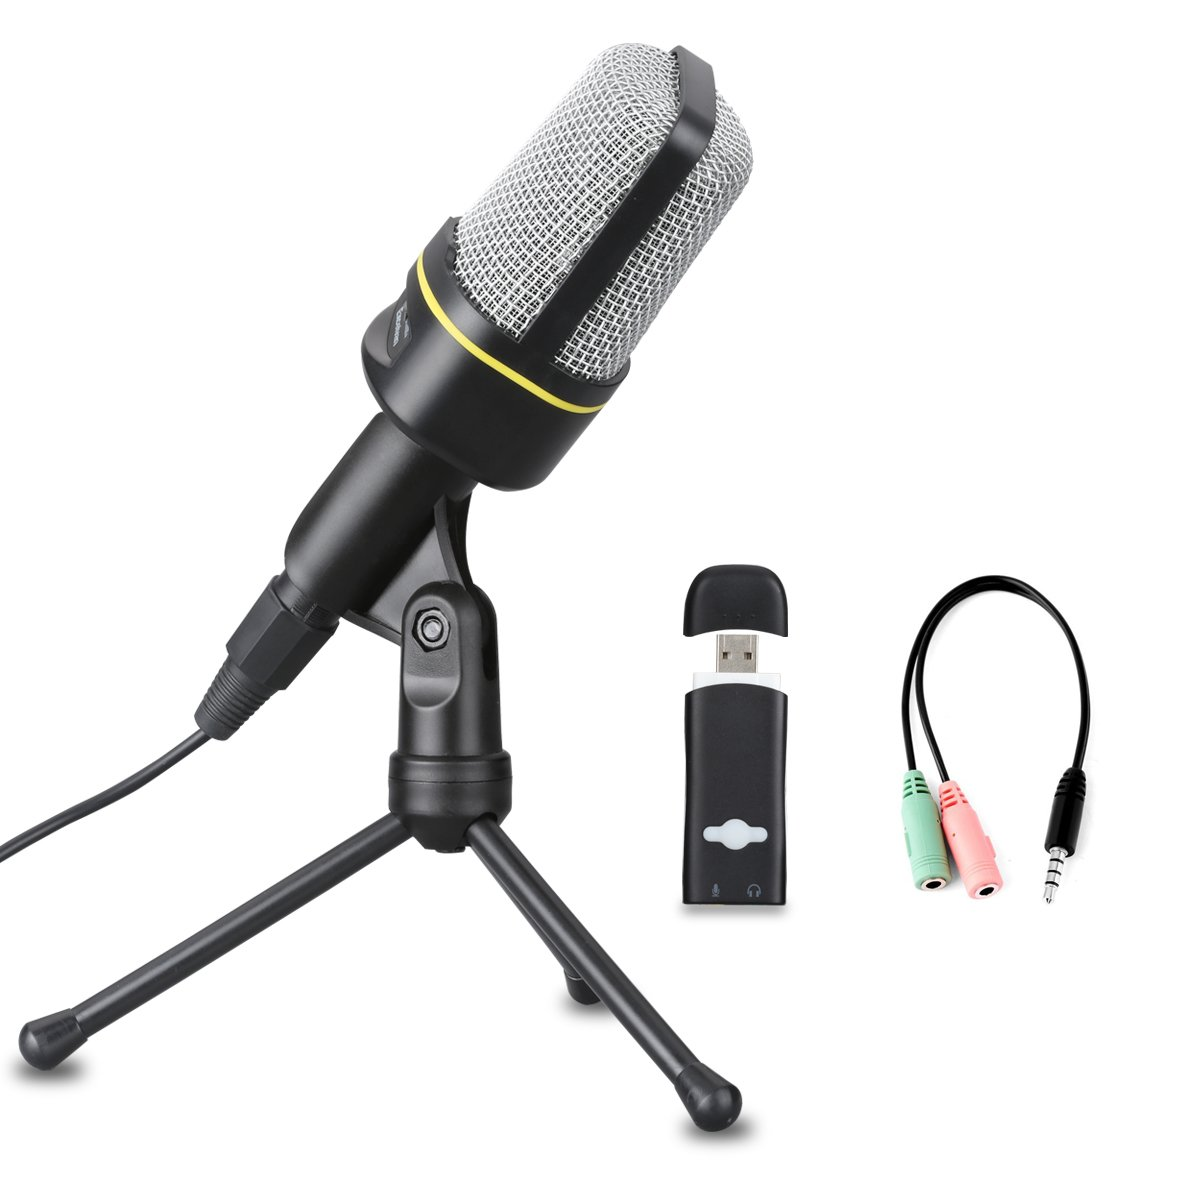 Excelvan Condenser Microphone Black SF-920 3.5mm Desktop Microphone with Volume Control and Tripod Stand Broadcasting Recording Podcasting Studio Mic for Mobile Phones, Laptops, Desktop (Black)